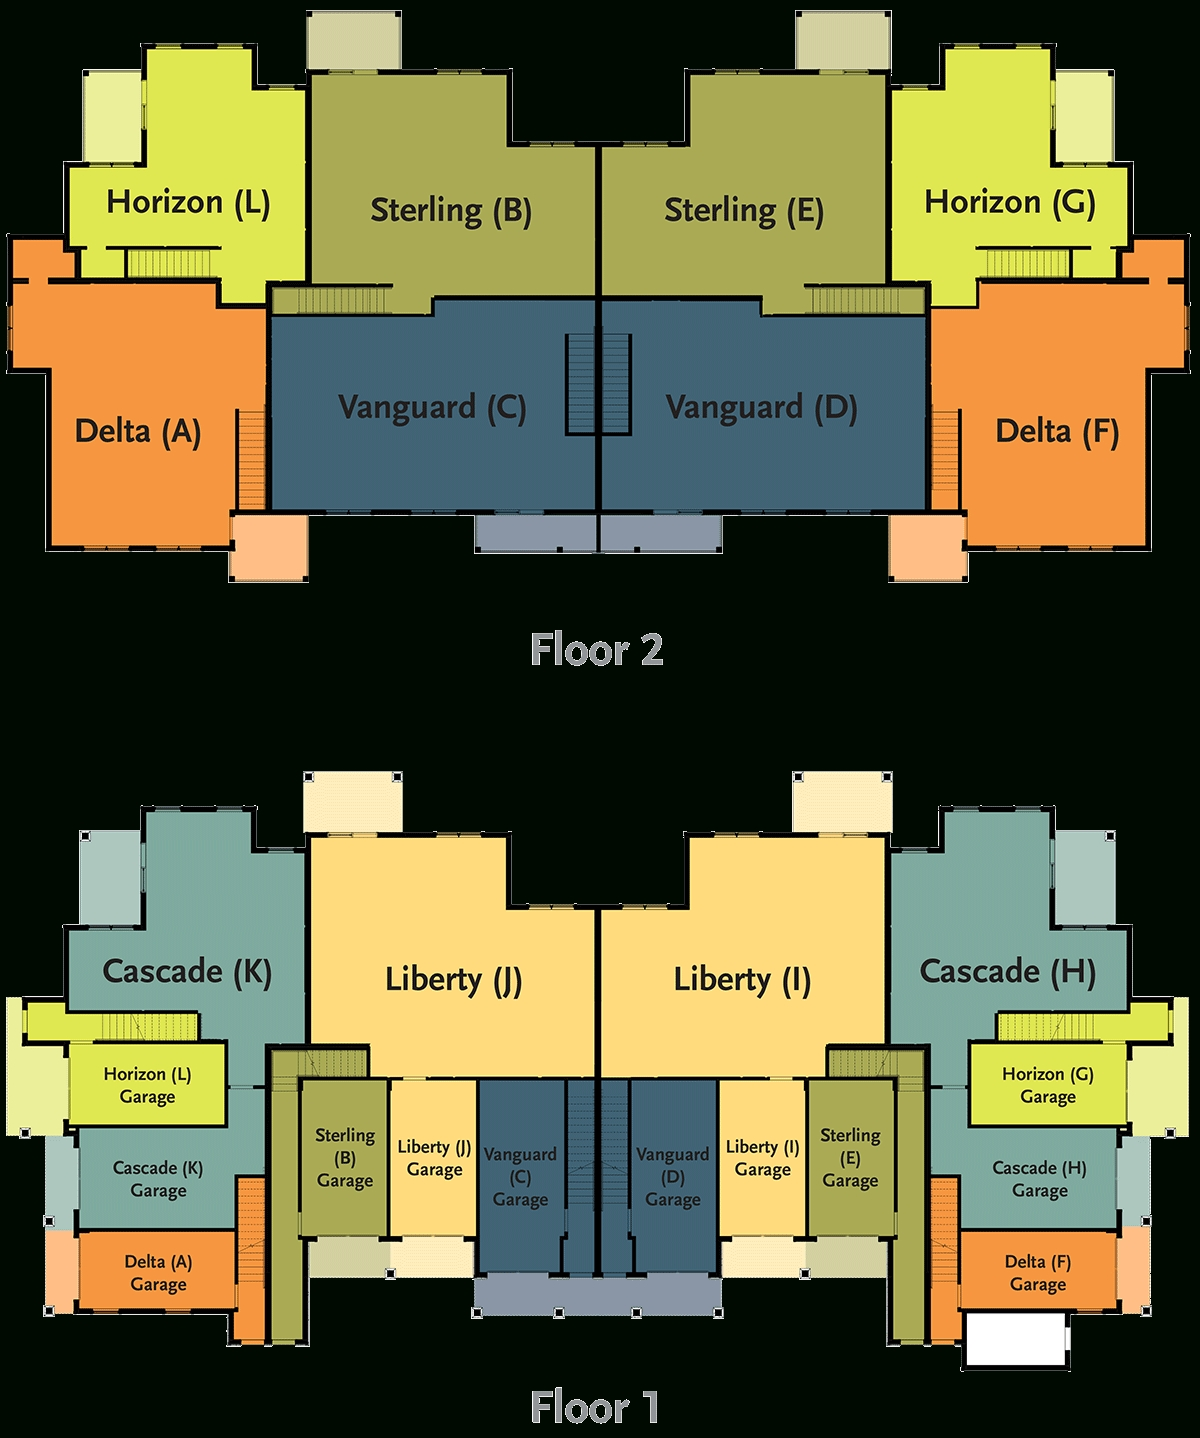 Garden Apartments Building Layout - Deerfield Place, Utica, Ny within Garden Apartment Floor Plans